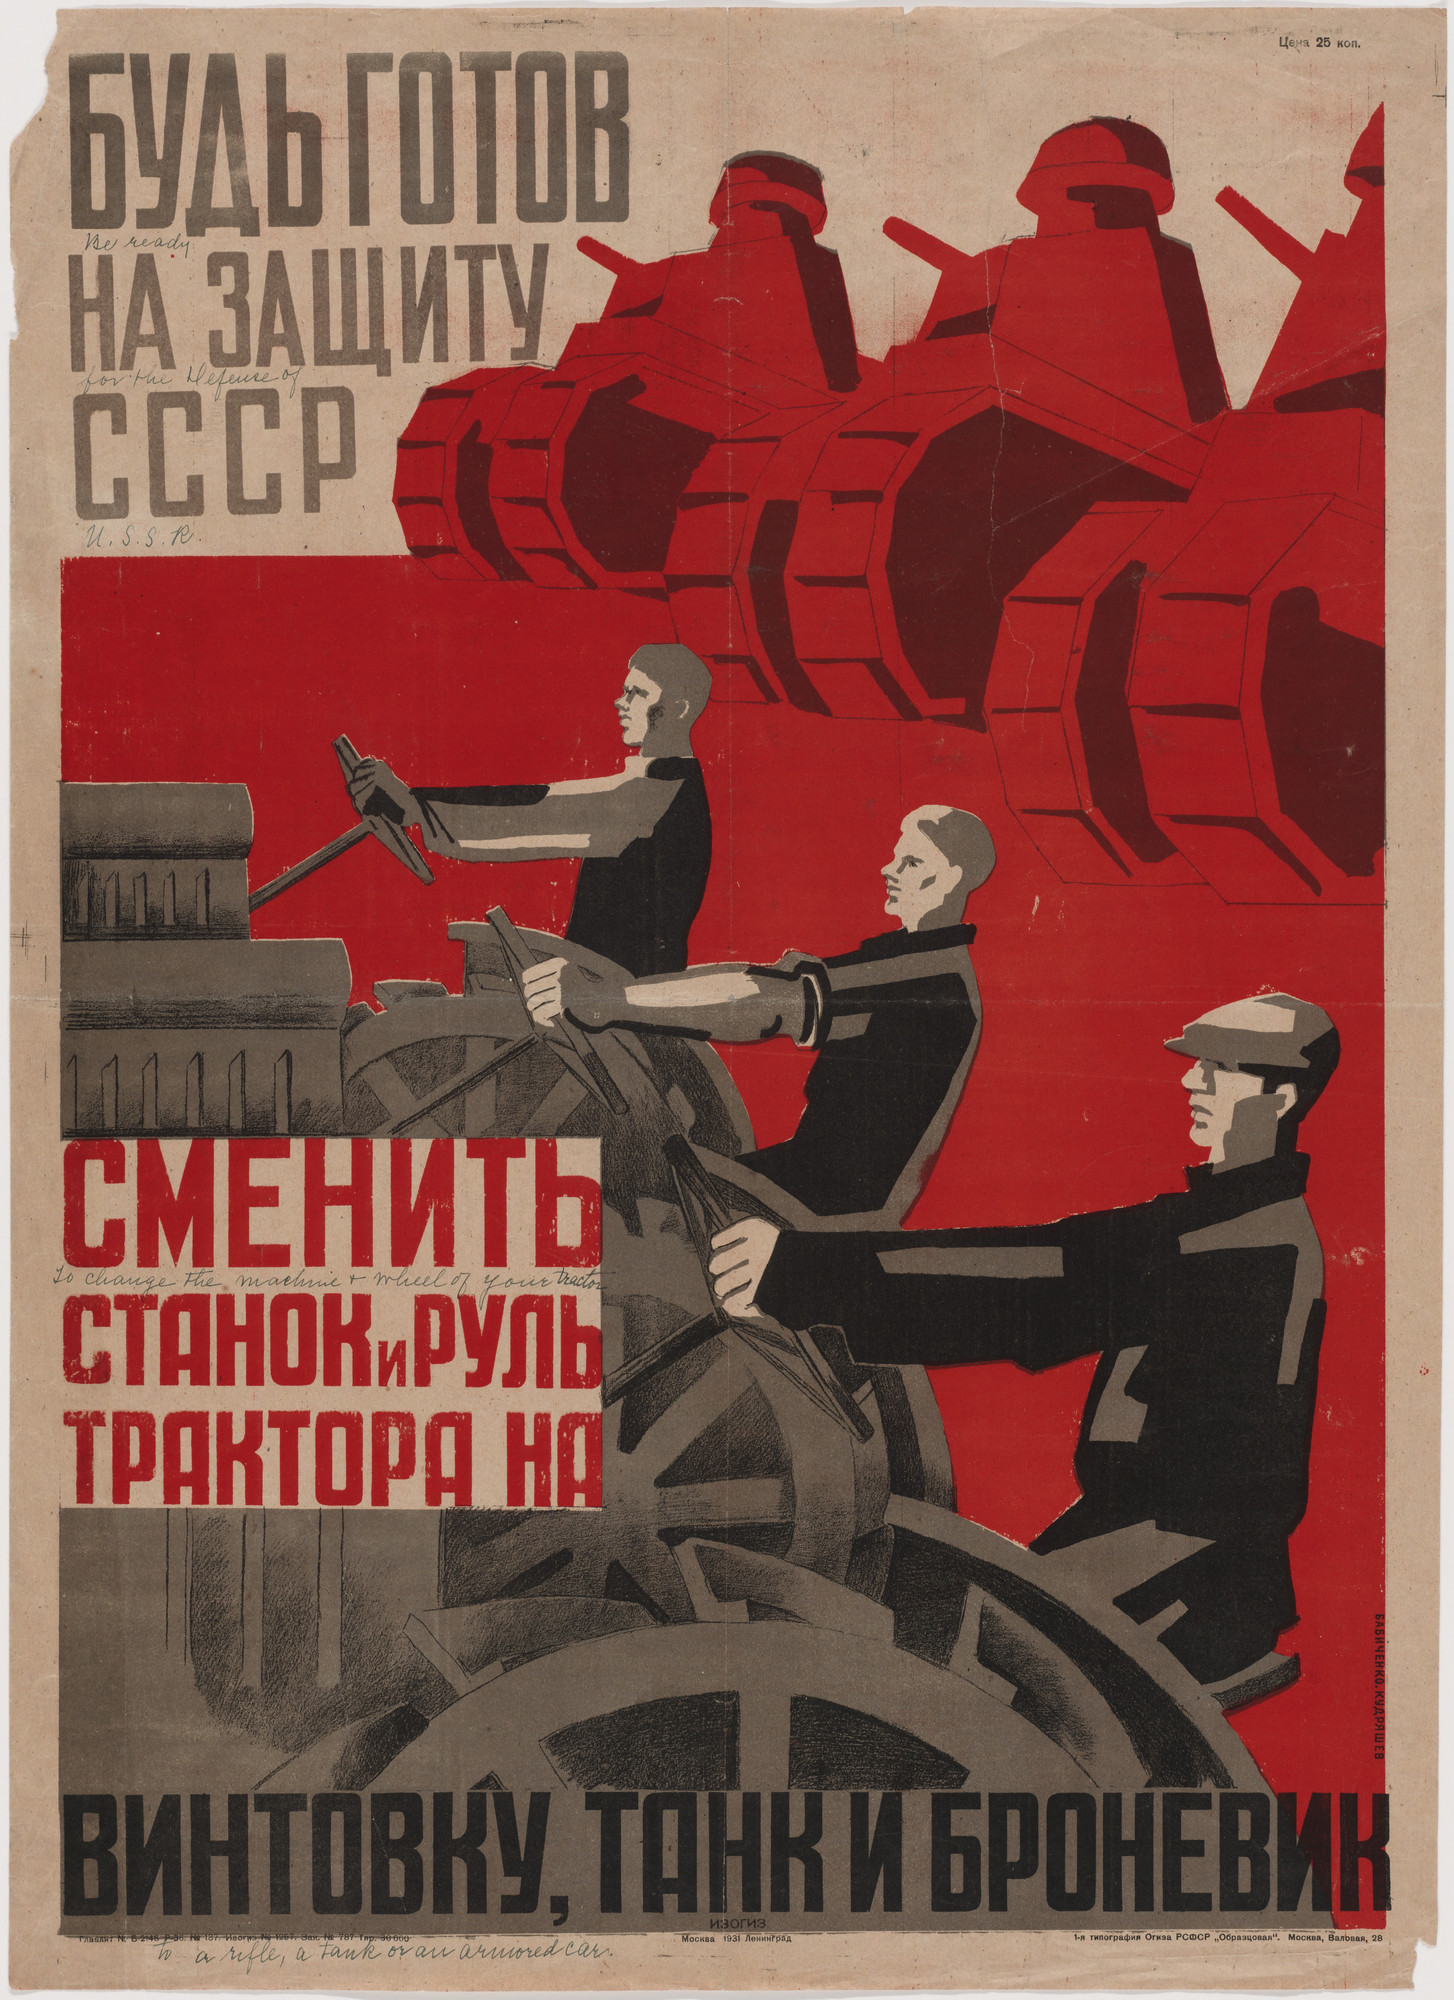 Dmitrij Naumovich Babichenko, Vladimir Vladimirovich Kudryashev. Be Ready for the Defense of U.S.S.R.. 1931